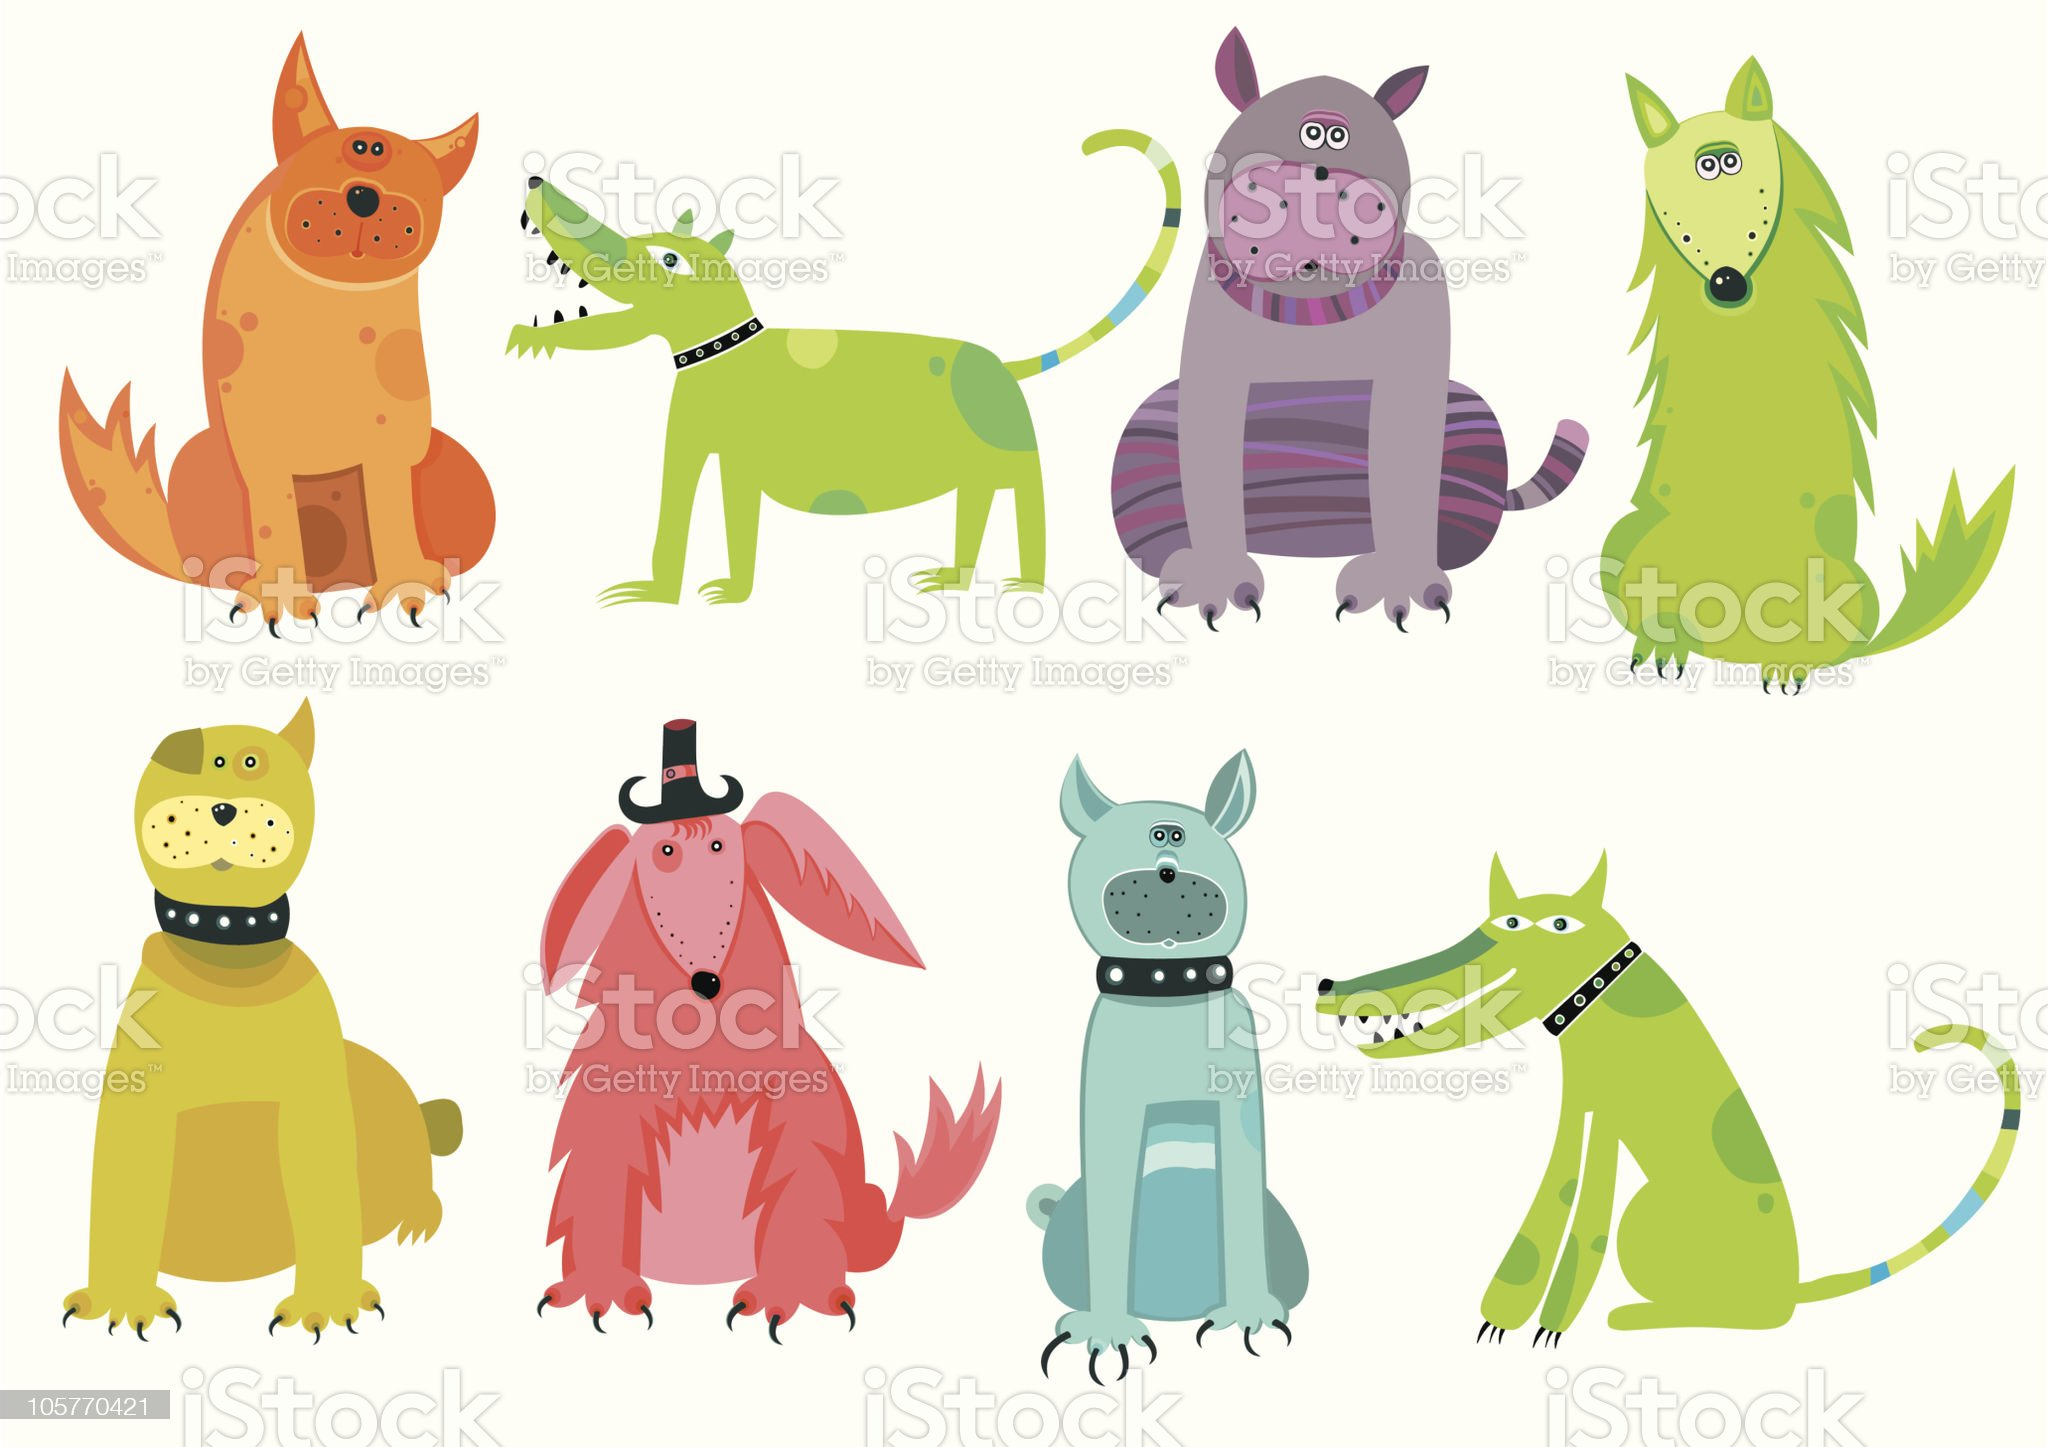 Collection of cartoon dogs royalty-free stock vector art